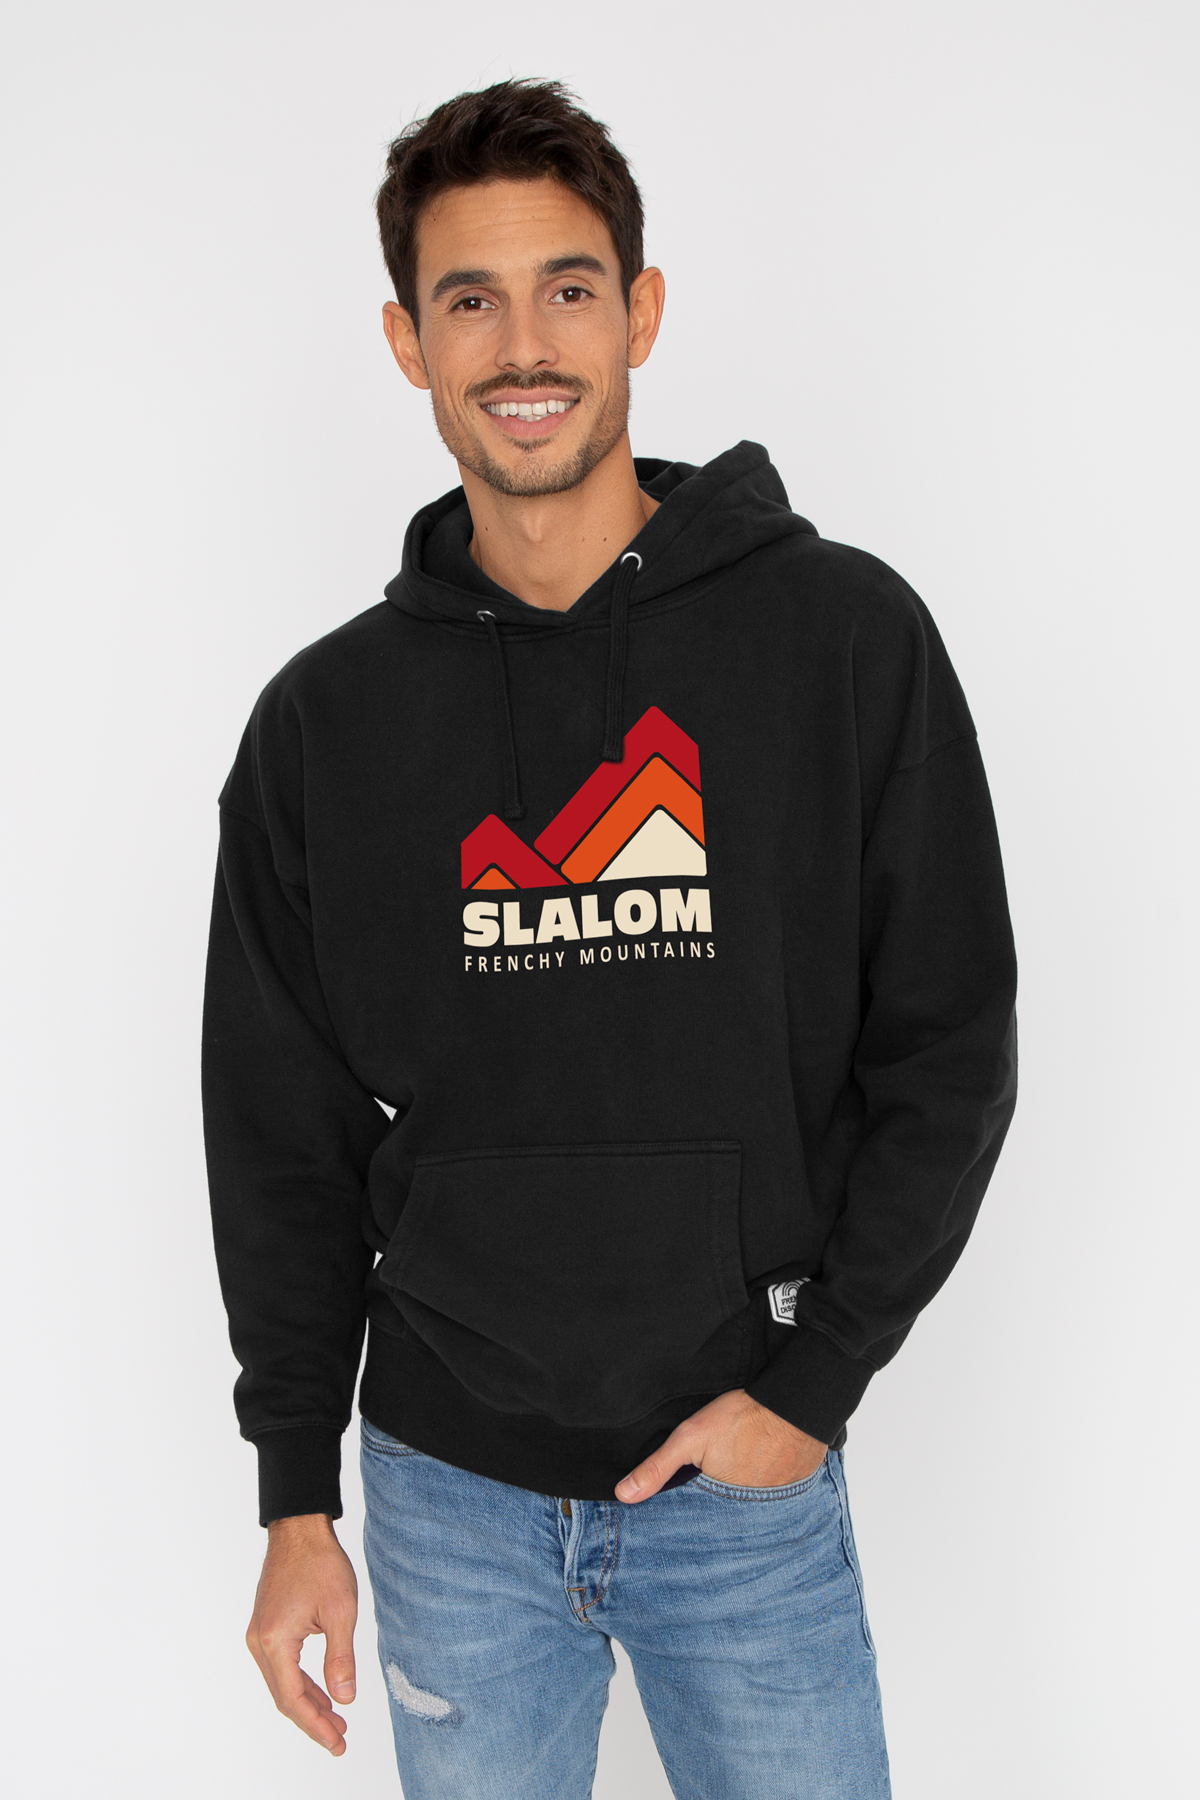 Photo de SWEAT À CAPUCHE Hoodie SLALOM chez French Disorder